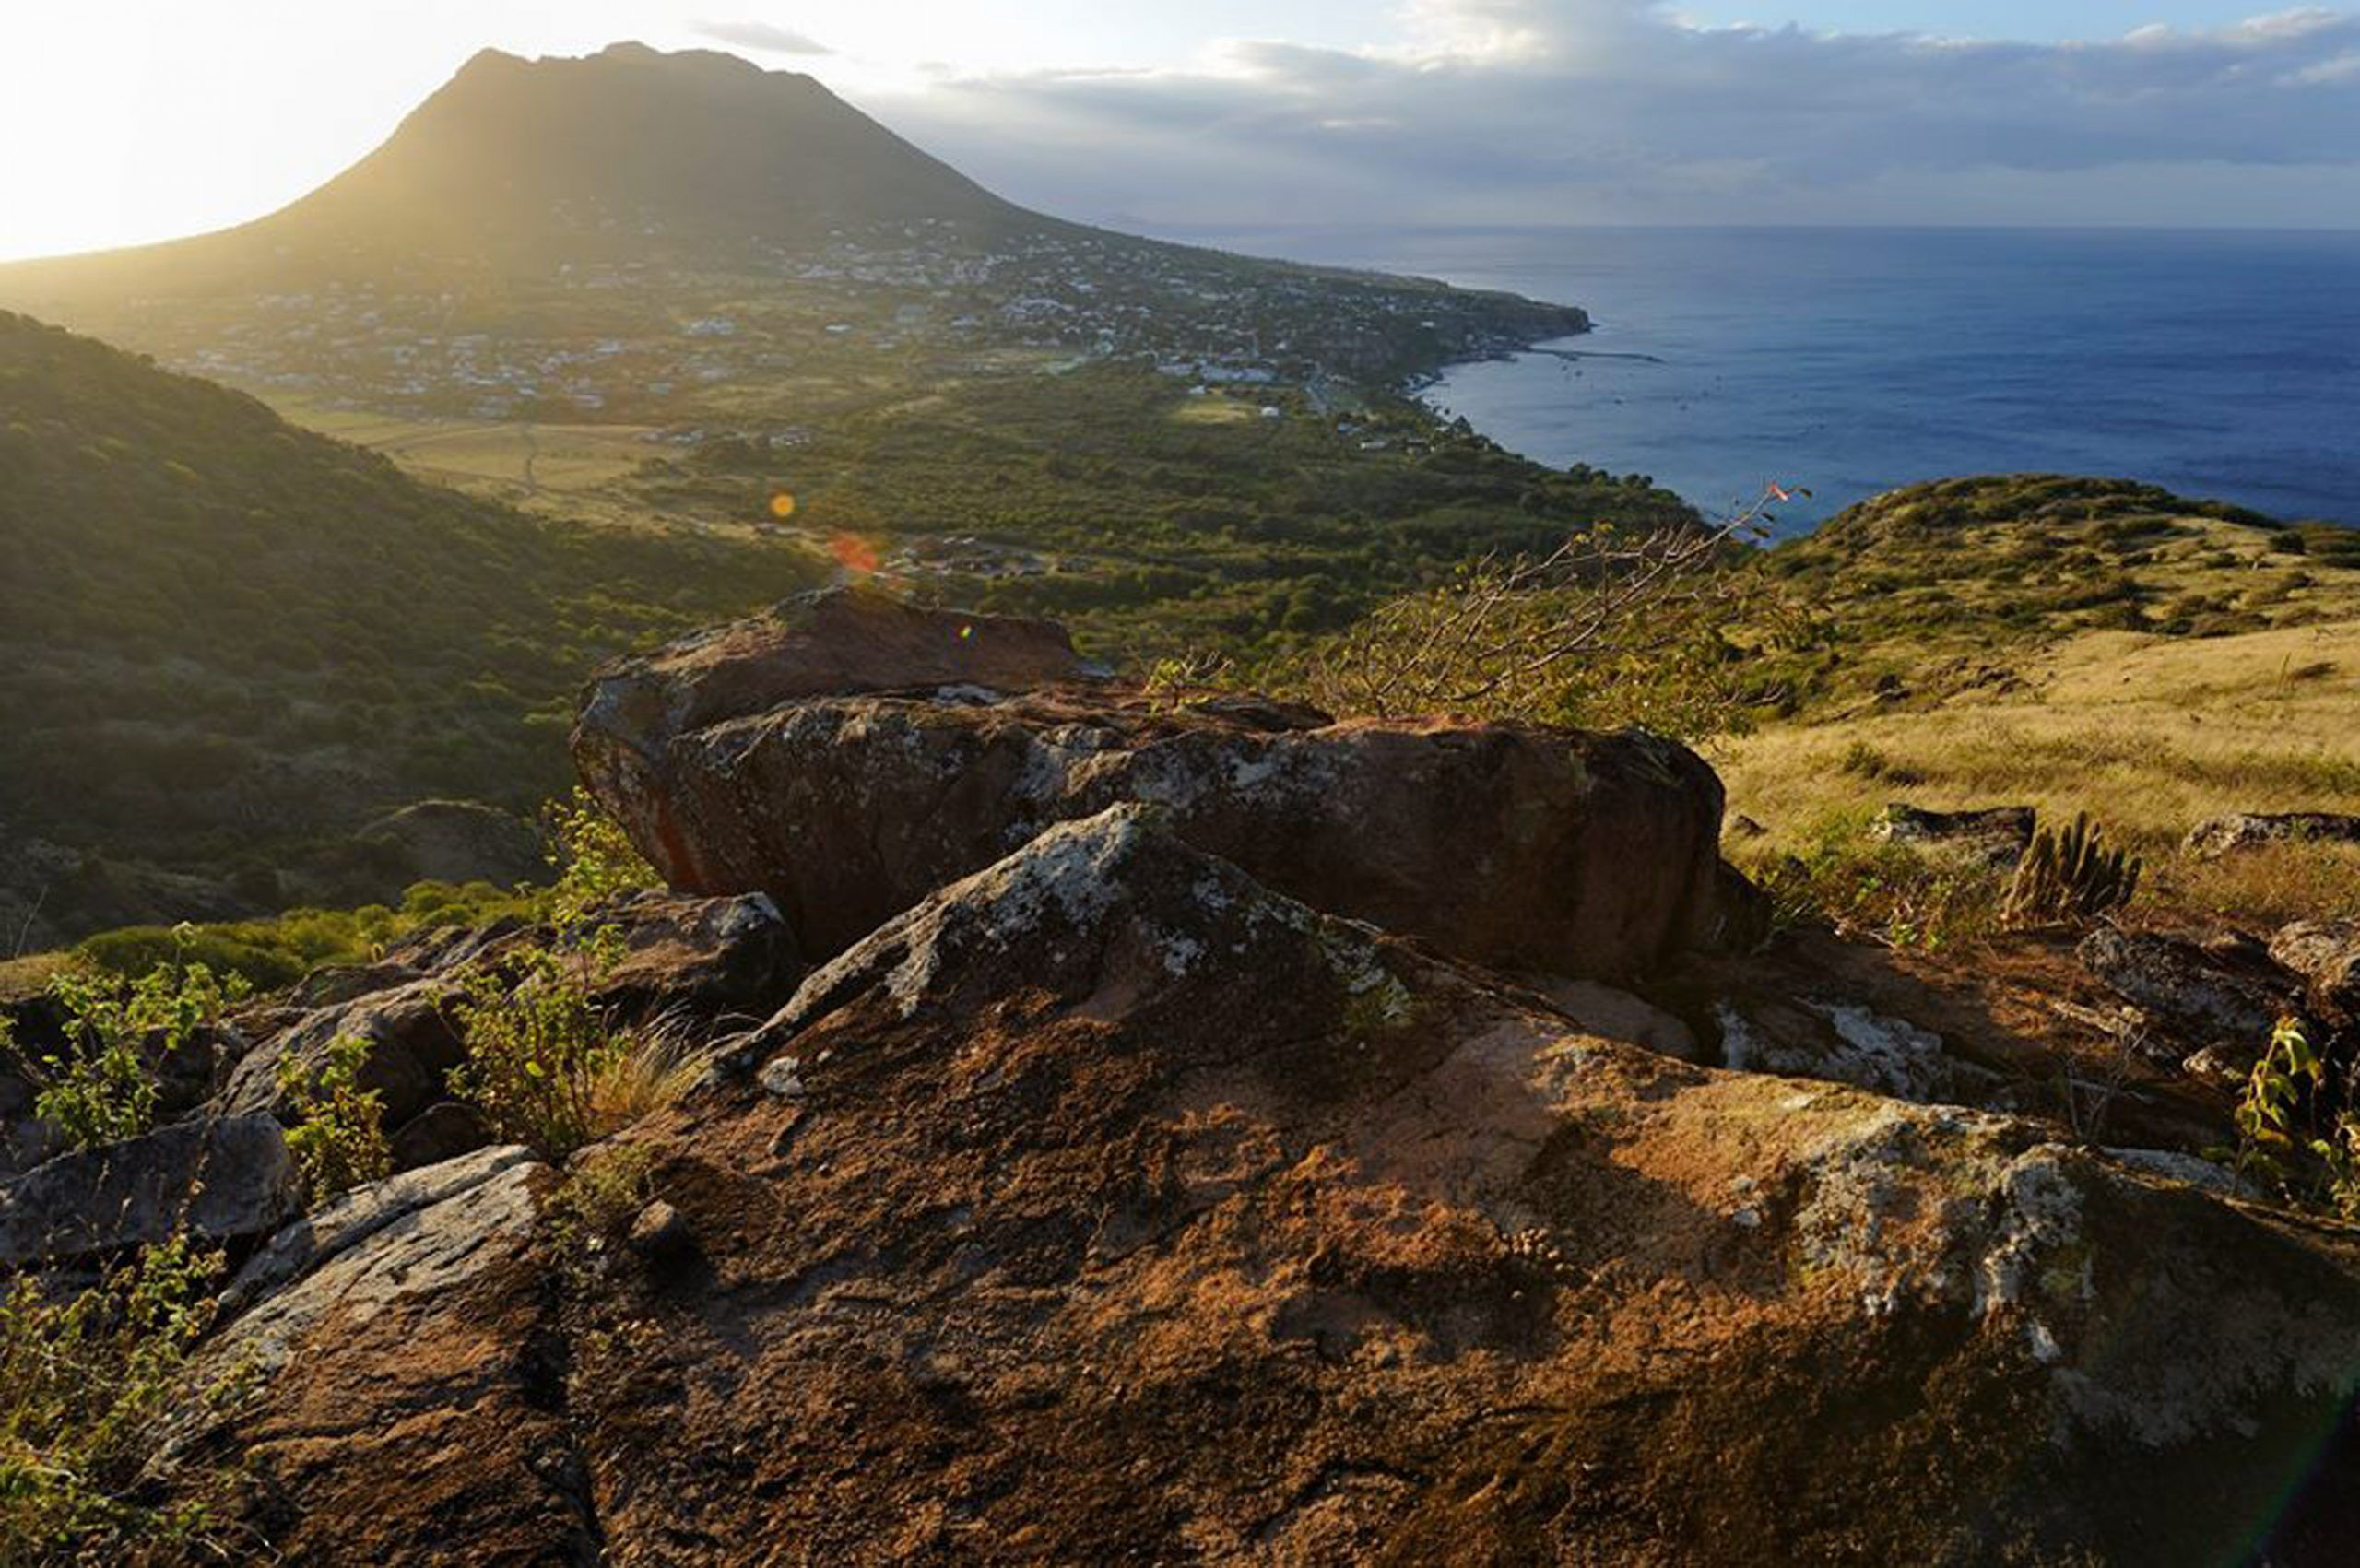 Statia Conservation Volunteer Project, St. Eustatius, Caribbean